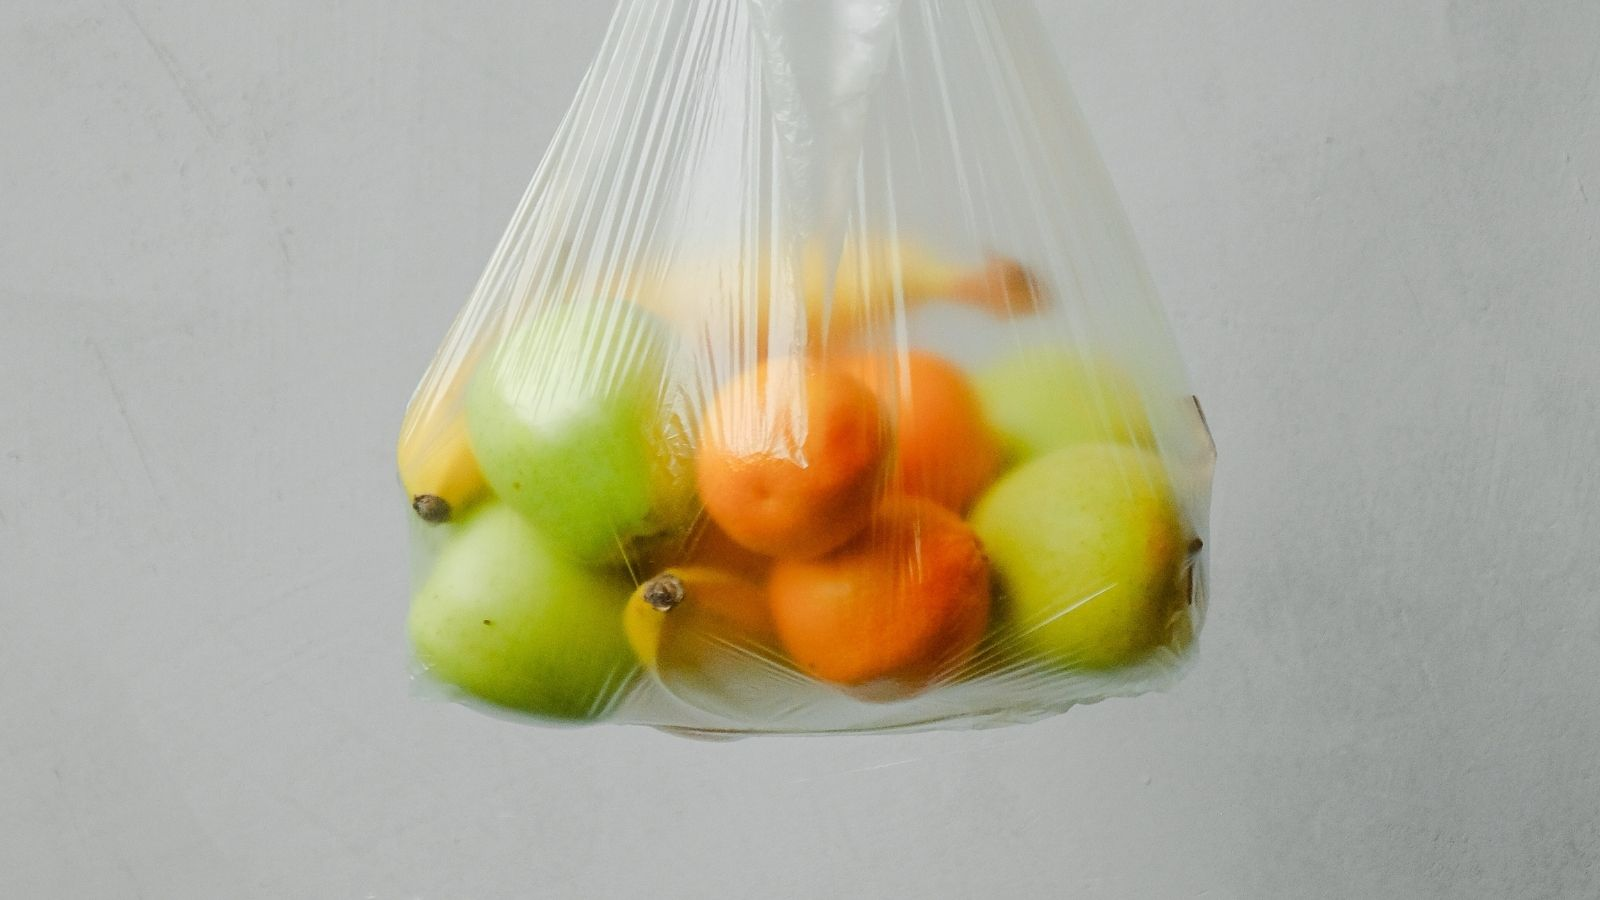 Fruit in a plastic bag. Photo credit: Anna Shvets, public domain